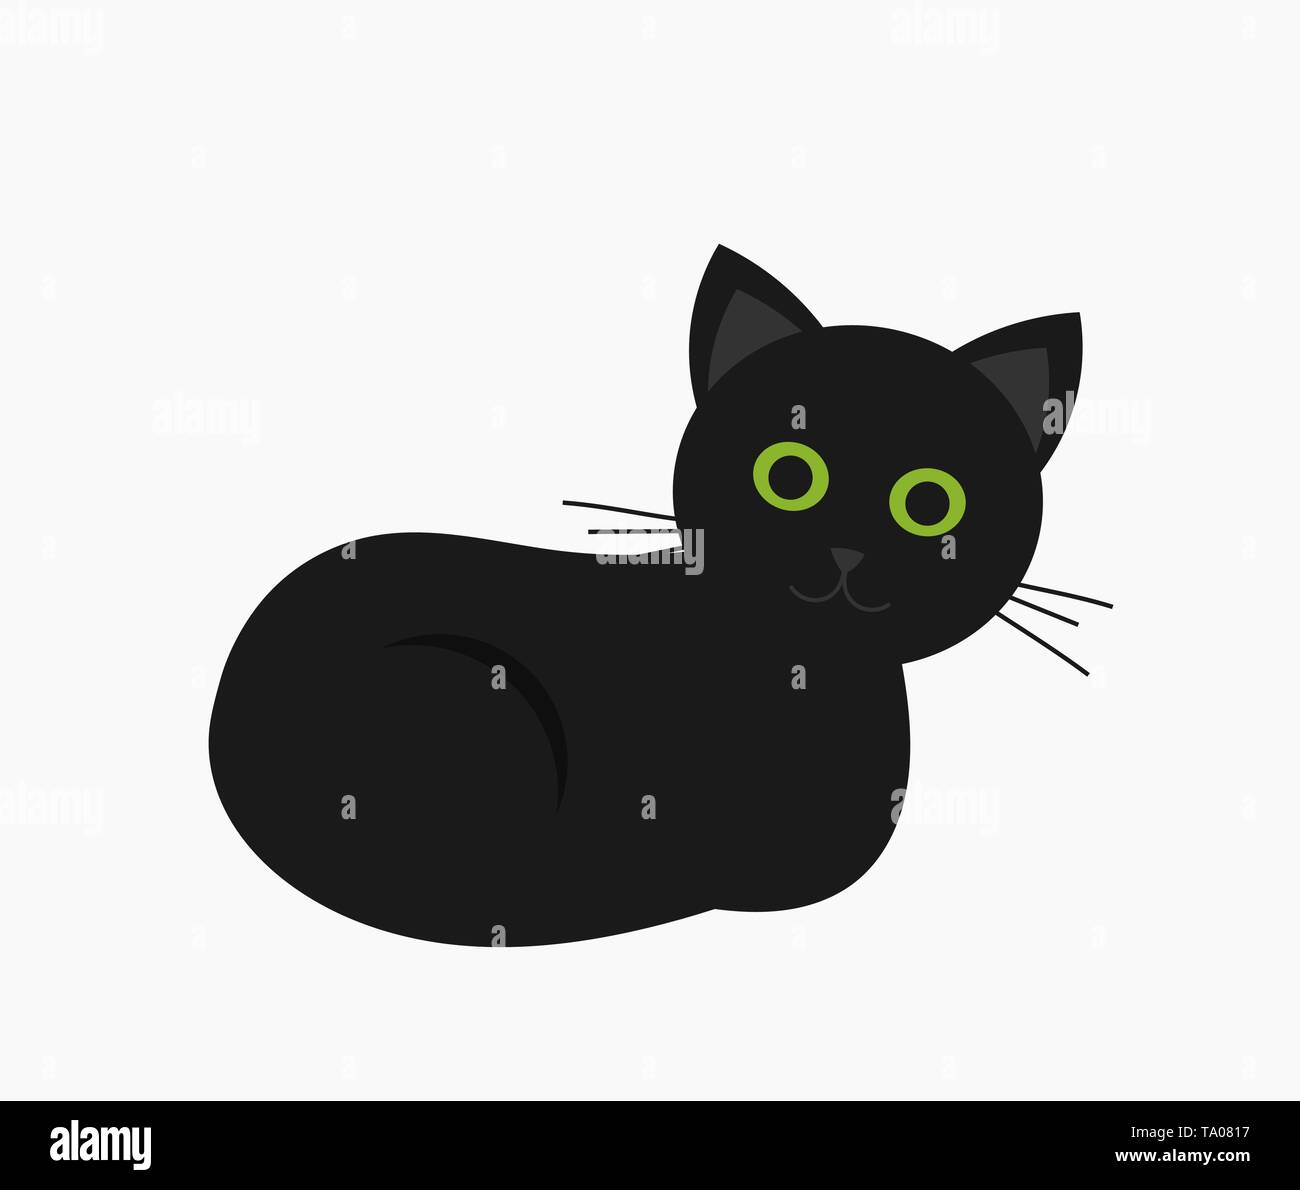 Cute black cat with green eyes. Vector illustration - Stock Image